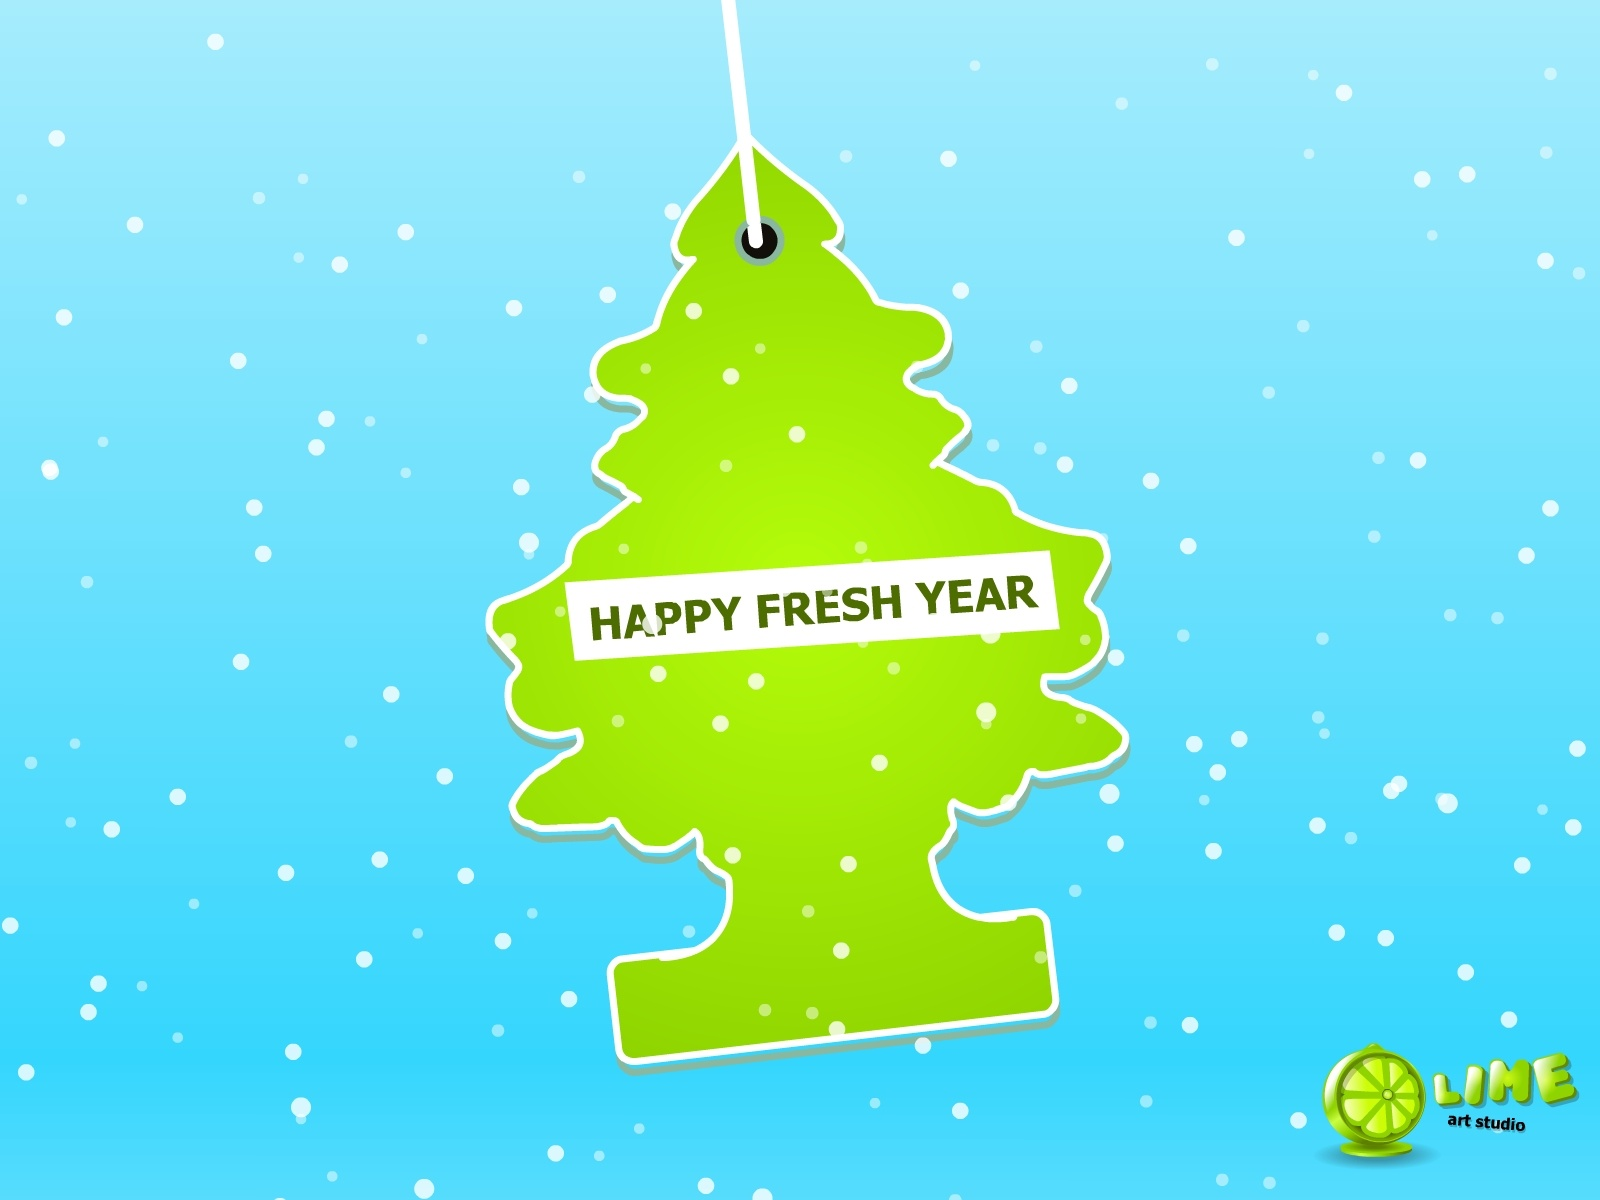 image new fresh year wallpapers and stock photos